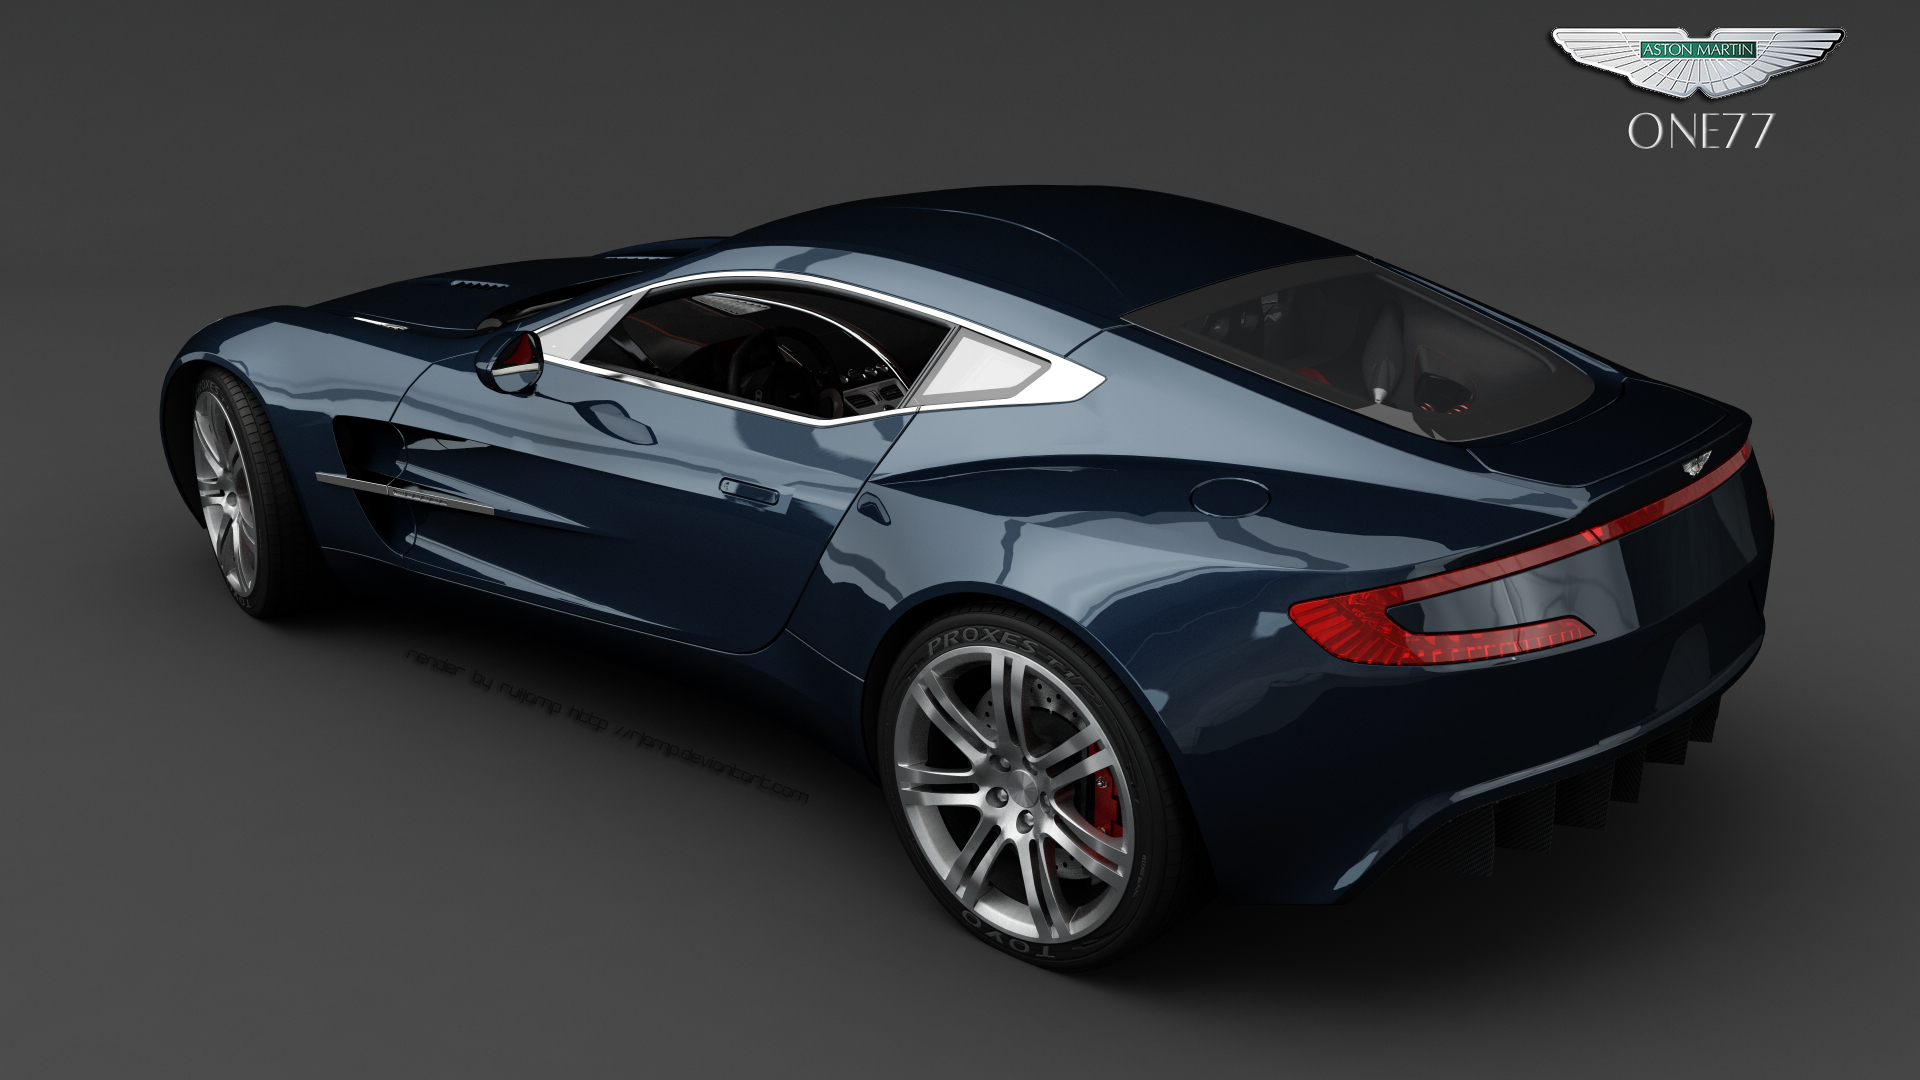 Pictures Of Aston Martin One 77 2012 Auto Database Com